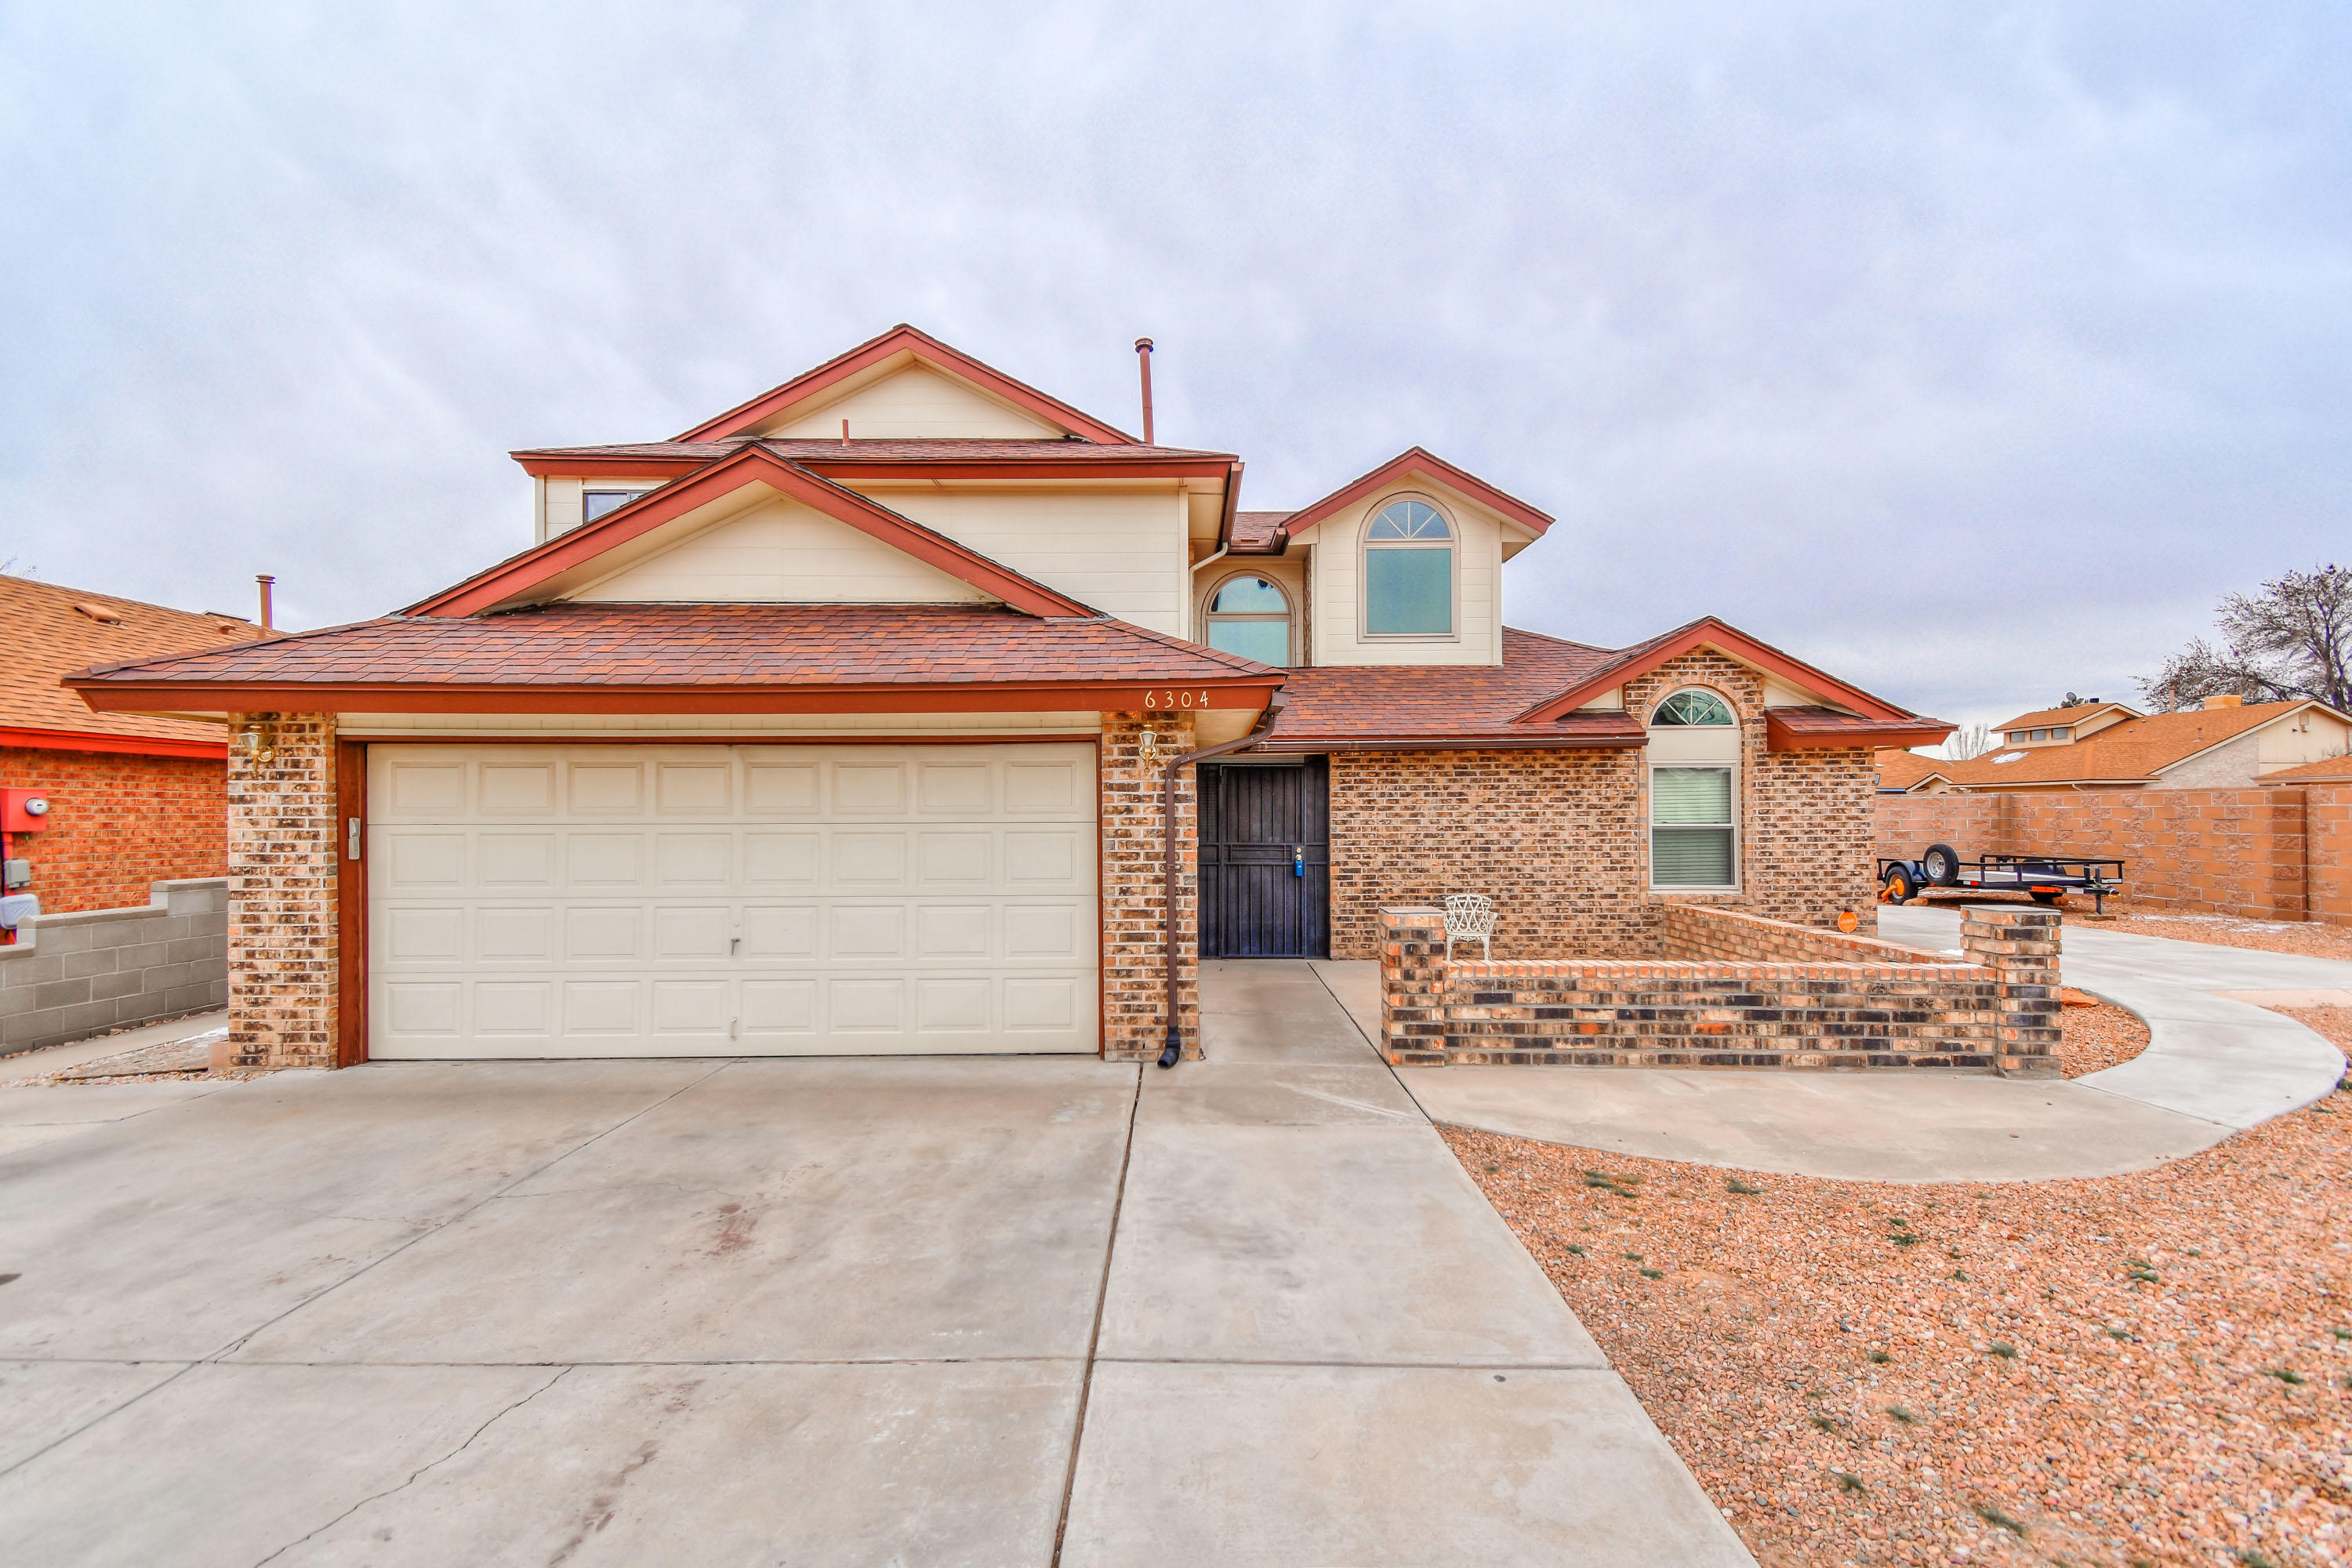 Northwest Albuquerque and Northwest Heights Homes for Sale -  Two Story,  6304 NW Bridle Street